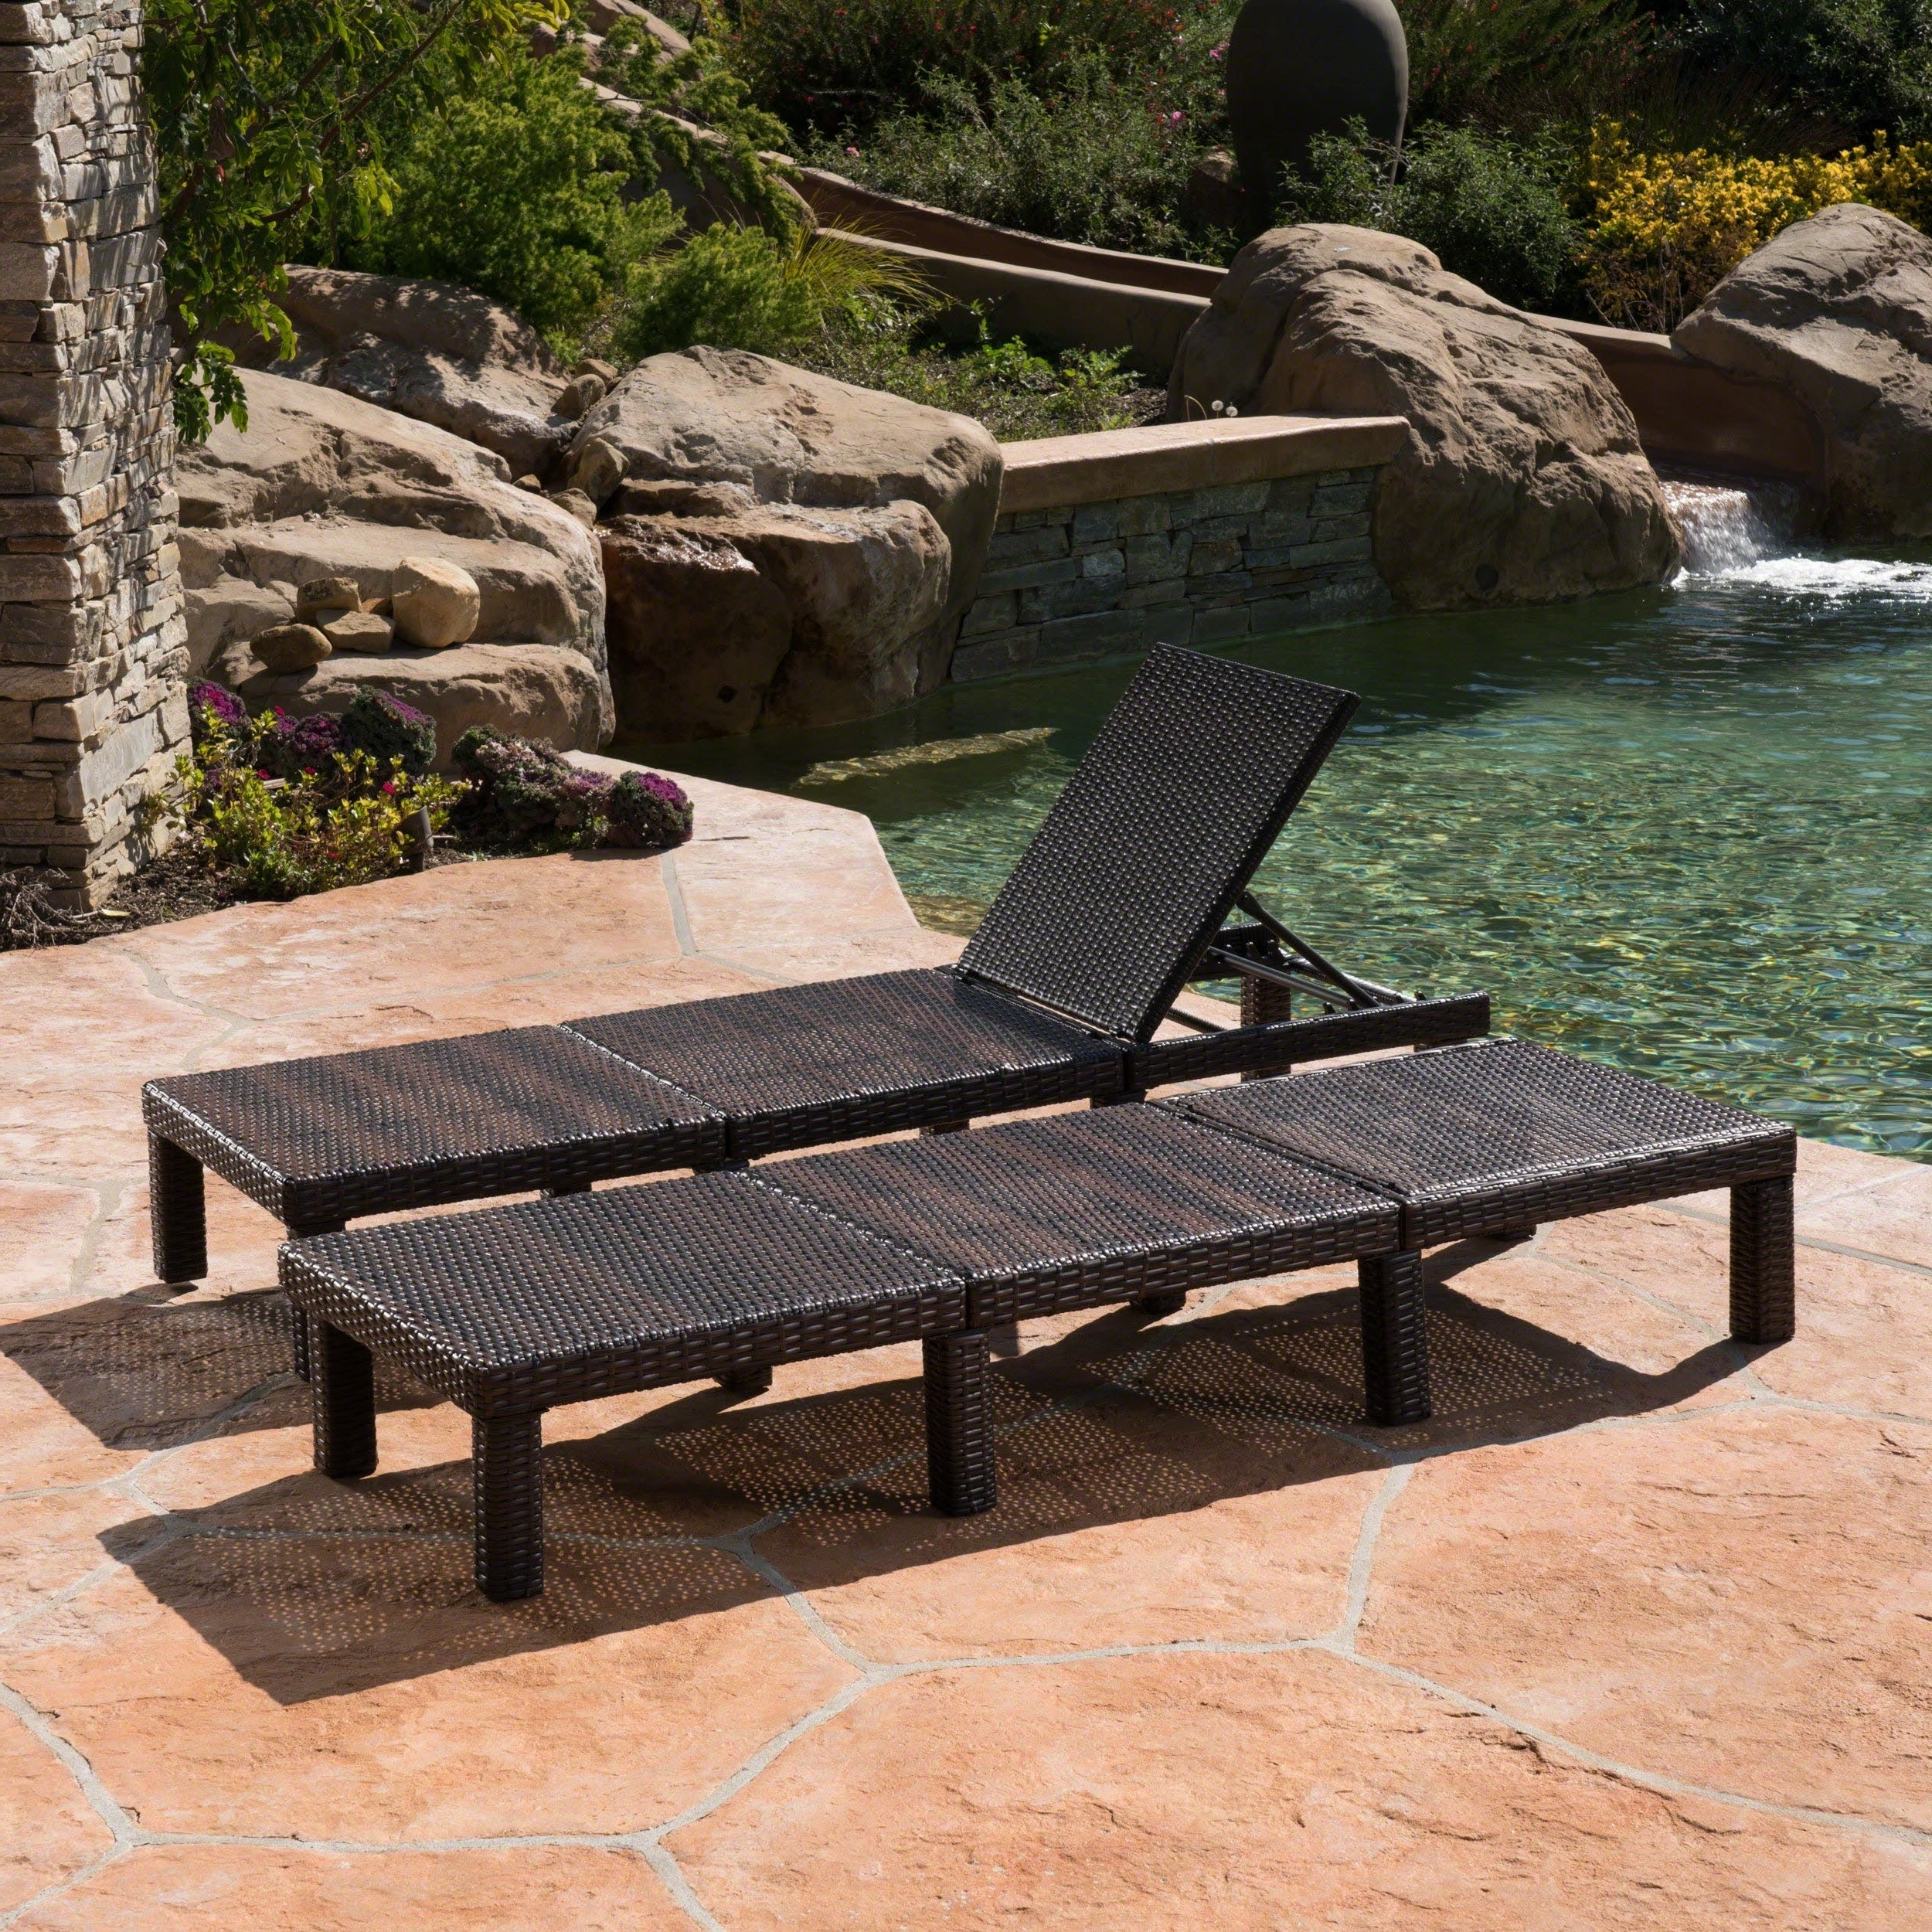 Jamaica Outdoor Chaise Lounge (Set Of 2)Christopher Knight Home Within Most Recently Released Jamaica Outdoor Chaise Lounges (View 8 of 25)